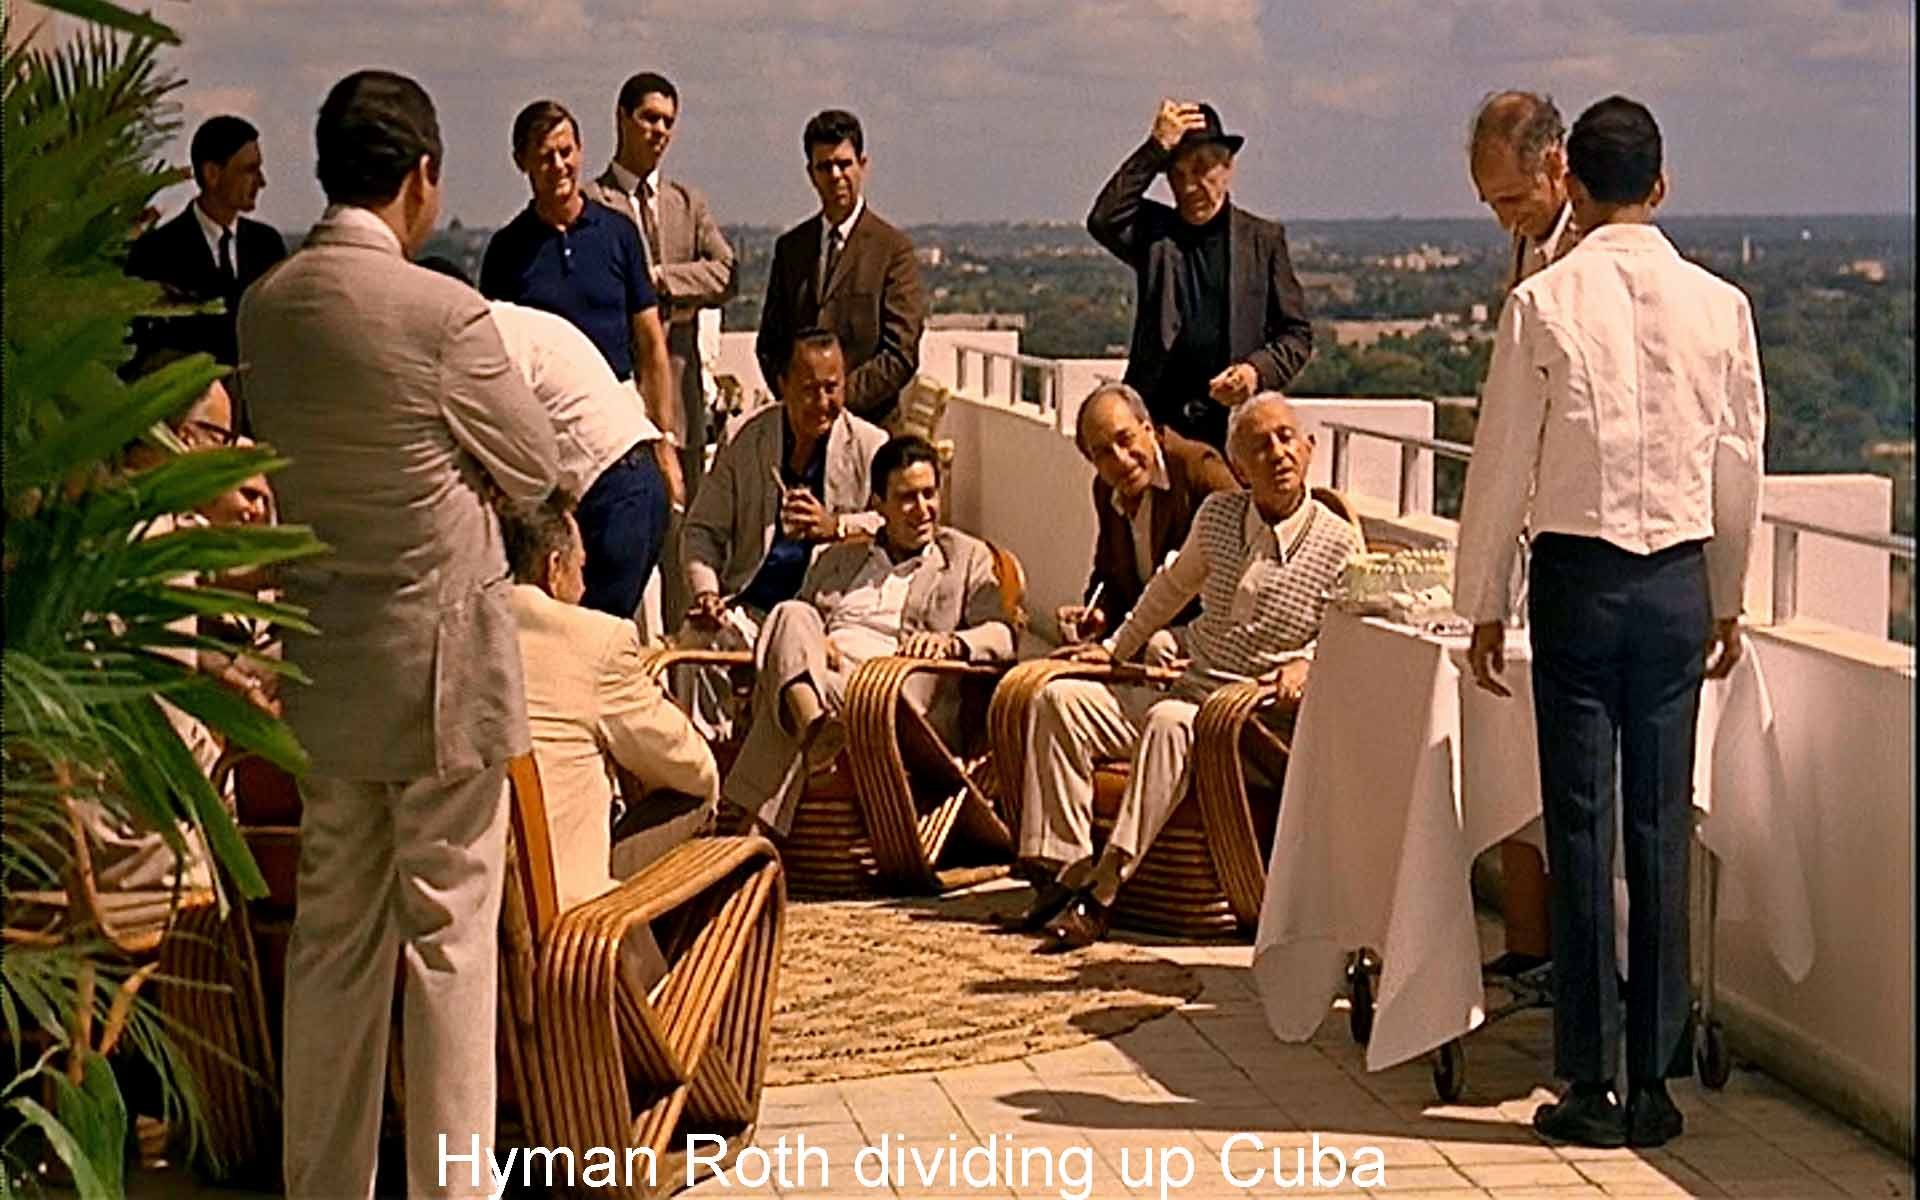 Hyman Roth dividing up Cuba